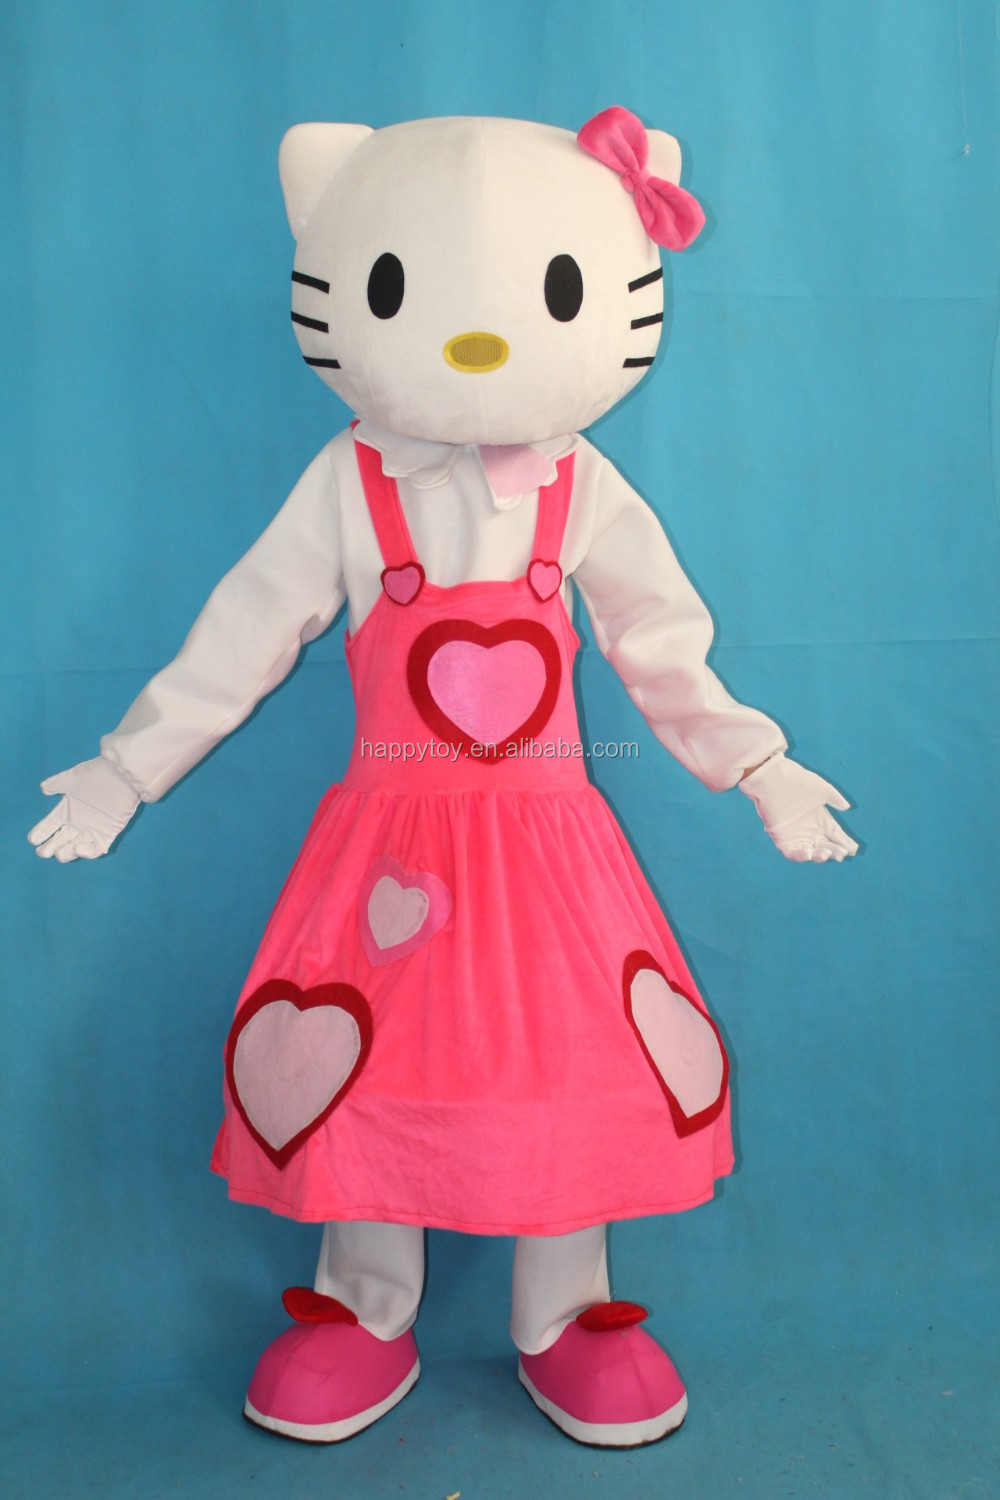 Mascot Costume for Adults Hello Kitty for Parties and Birthdays Size XL New